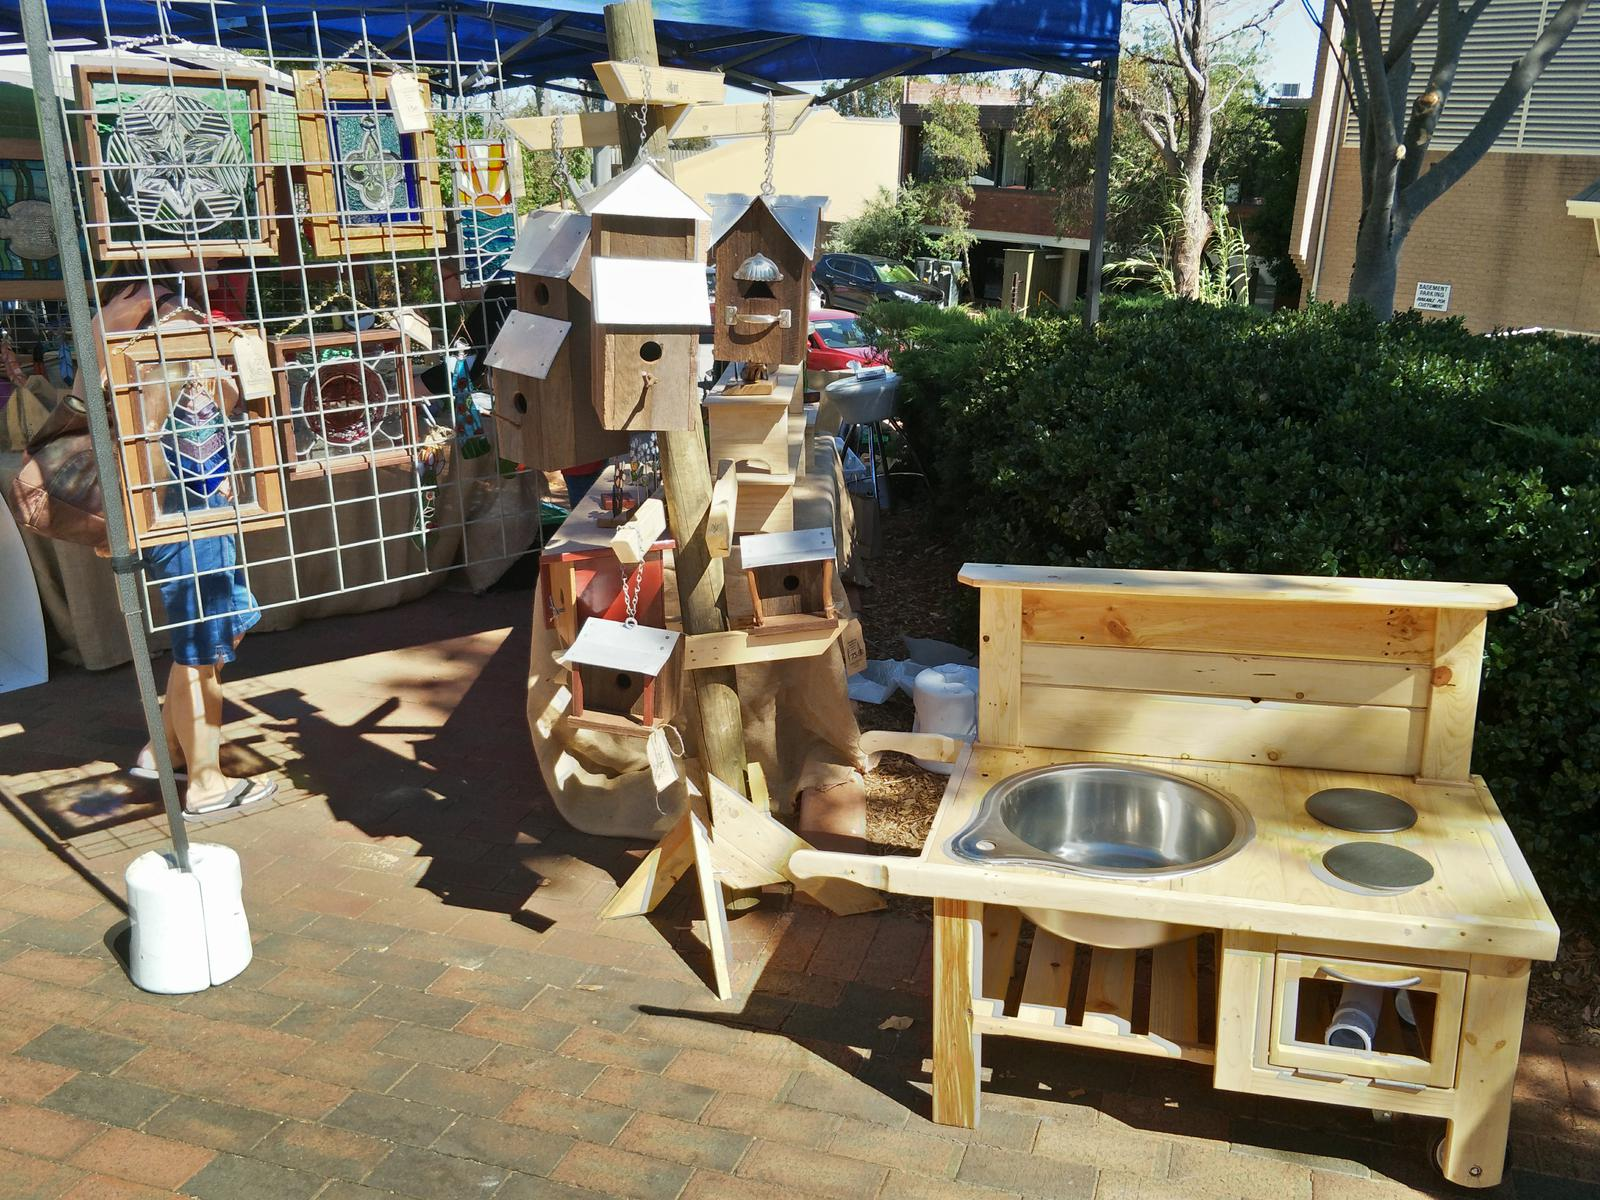 Birdhouses/Mud Kitchen